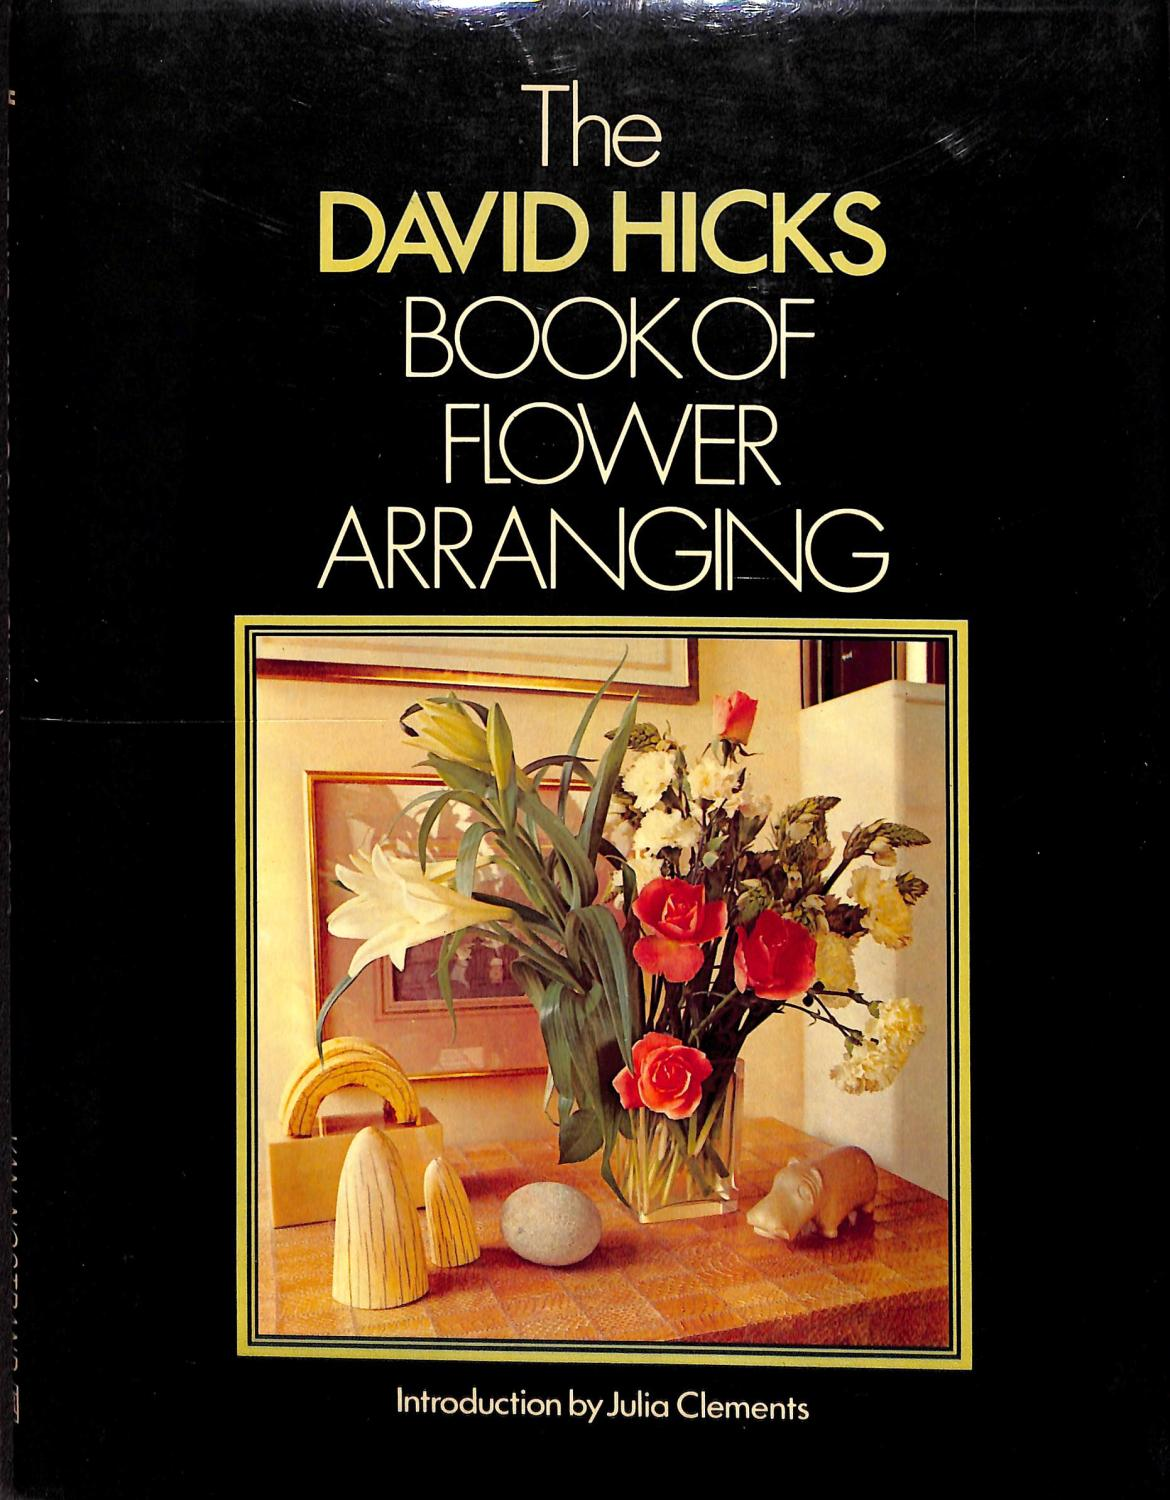 The David Hicks Book of Flower Arranging